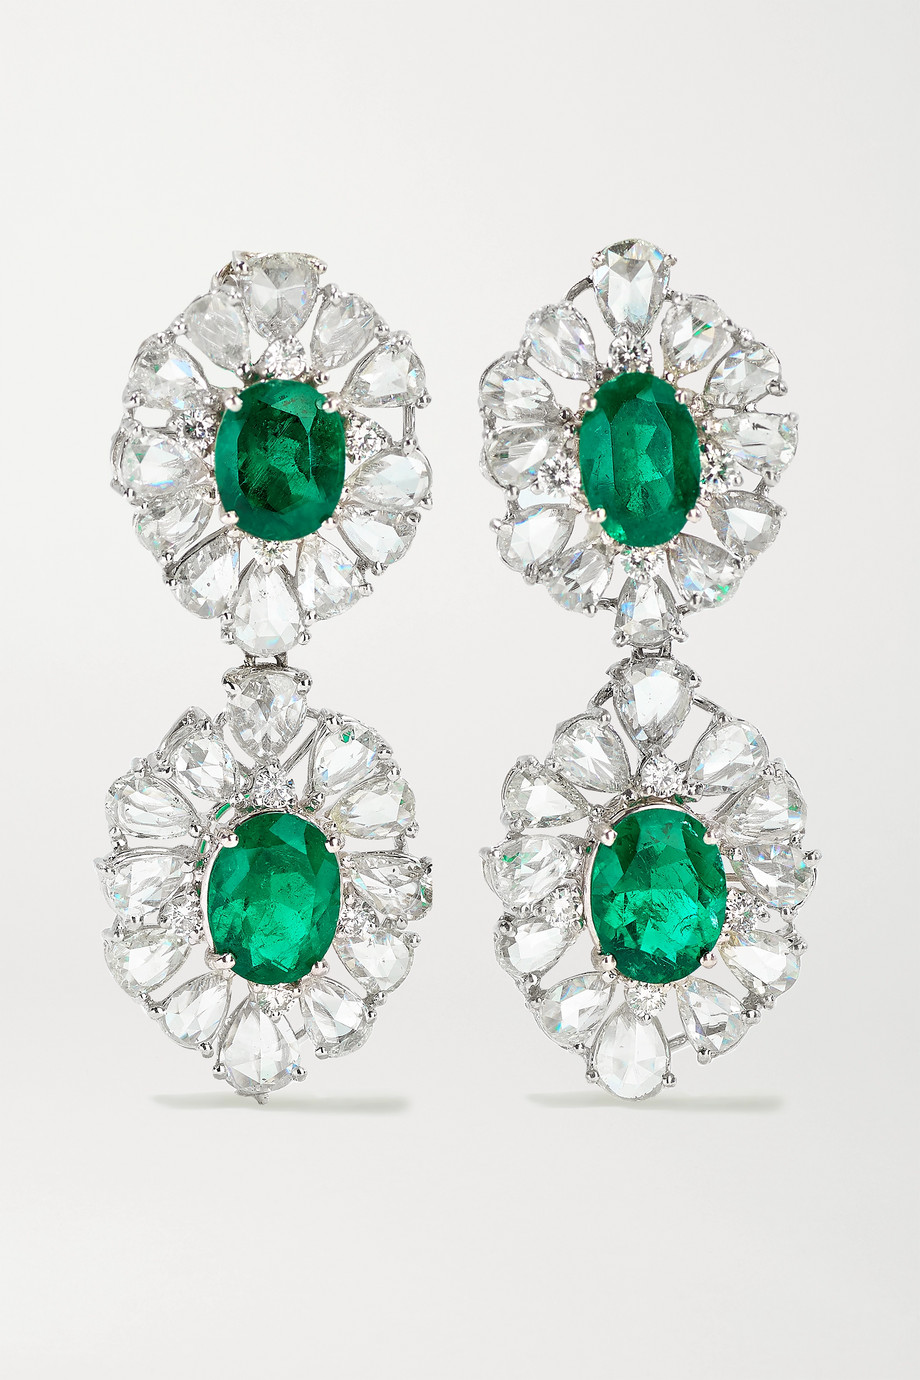 Lorraine Schwartz 18-karat white gold, diamond and emerald earrings